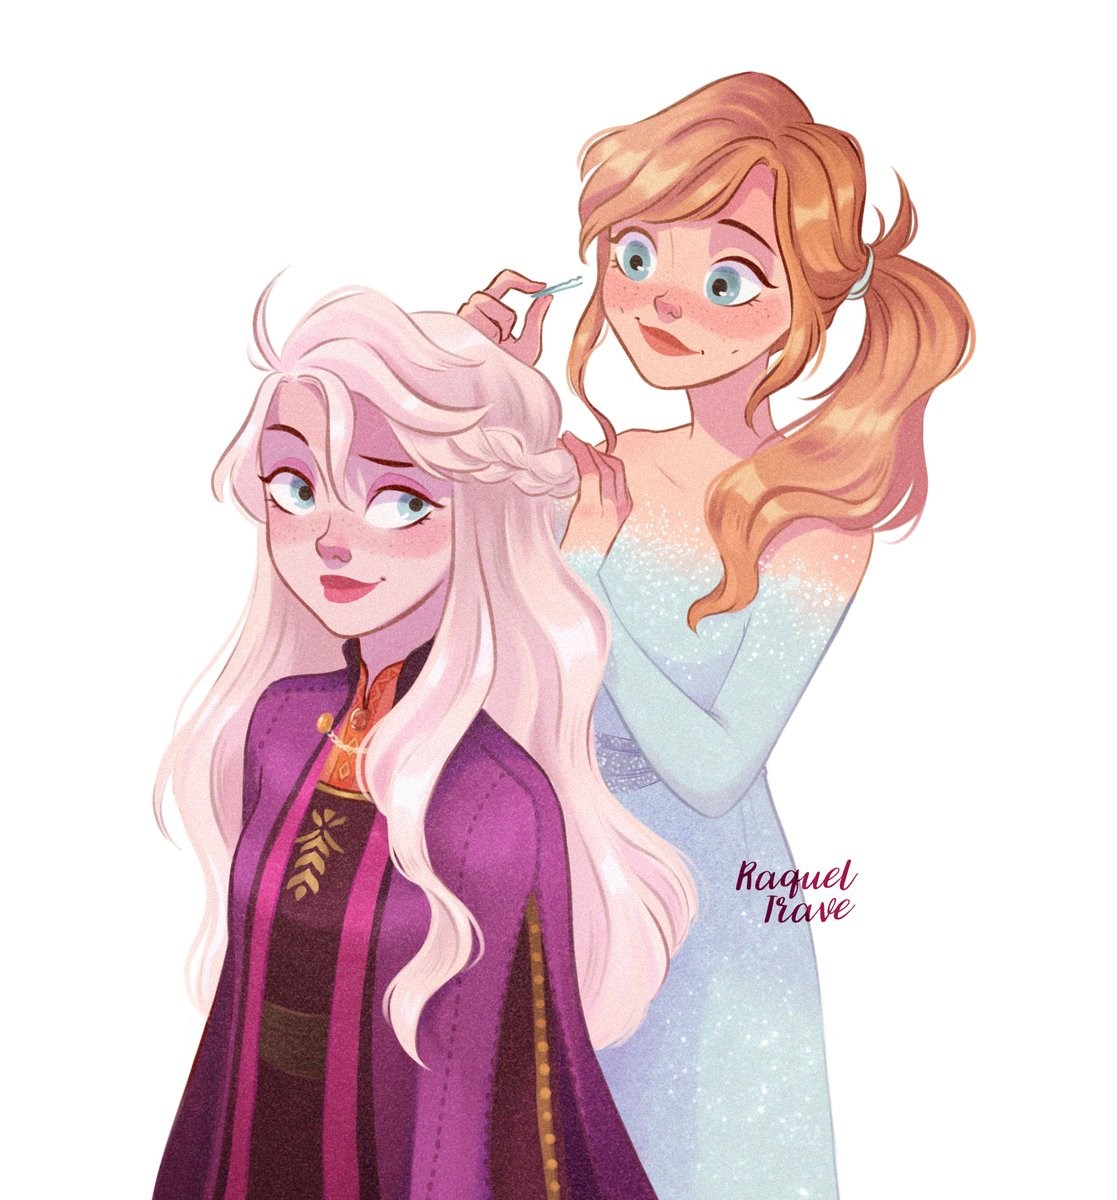 Elsa and Anna switching outfits  #frozen2  <br>http://pic.twitter.com/RL4799xGdI